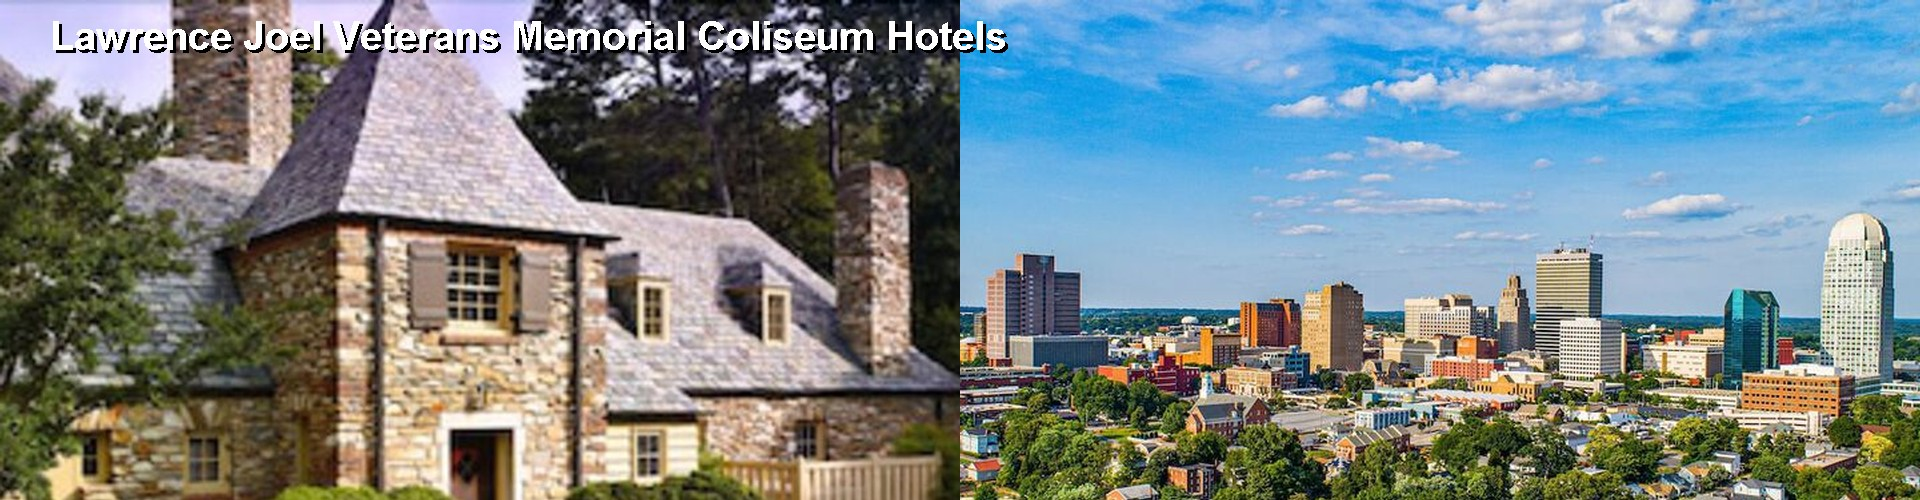 5 Best Hotels near Lawrence Joel Veterans Memorial Coliseum